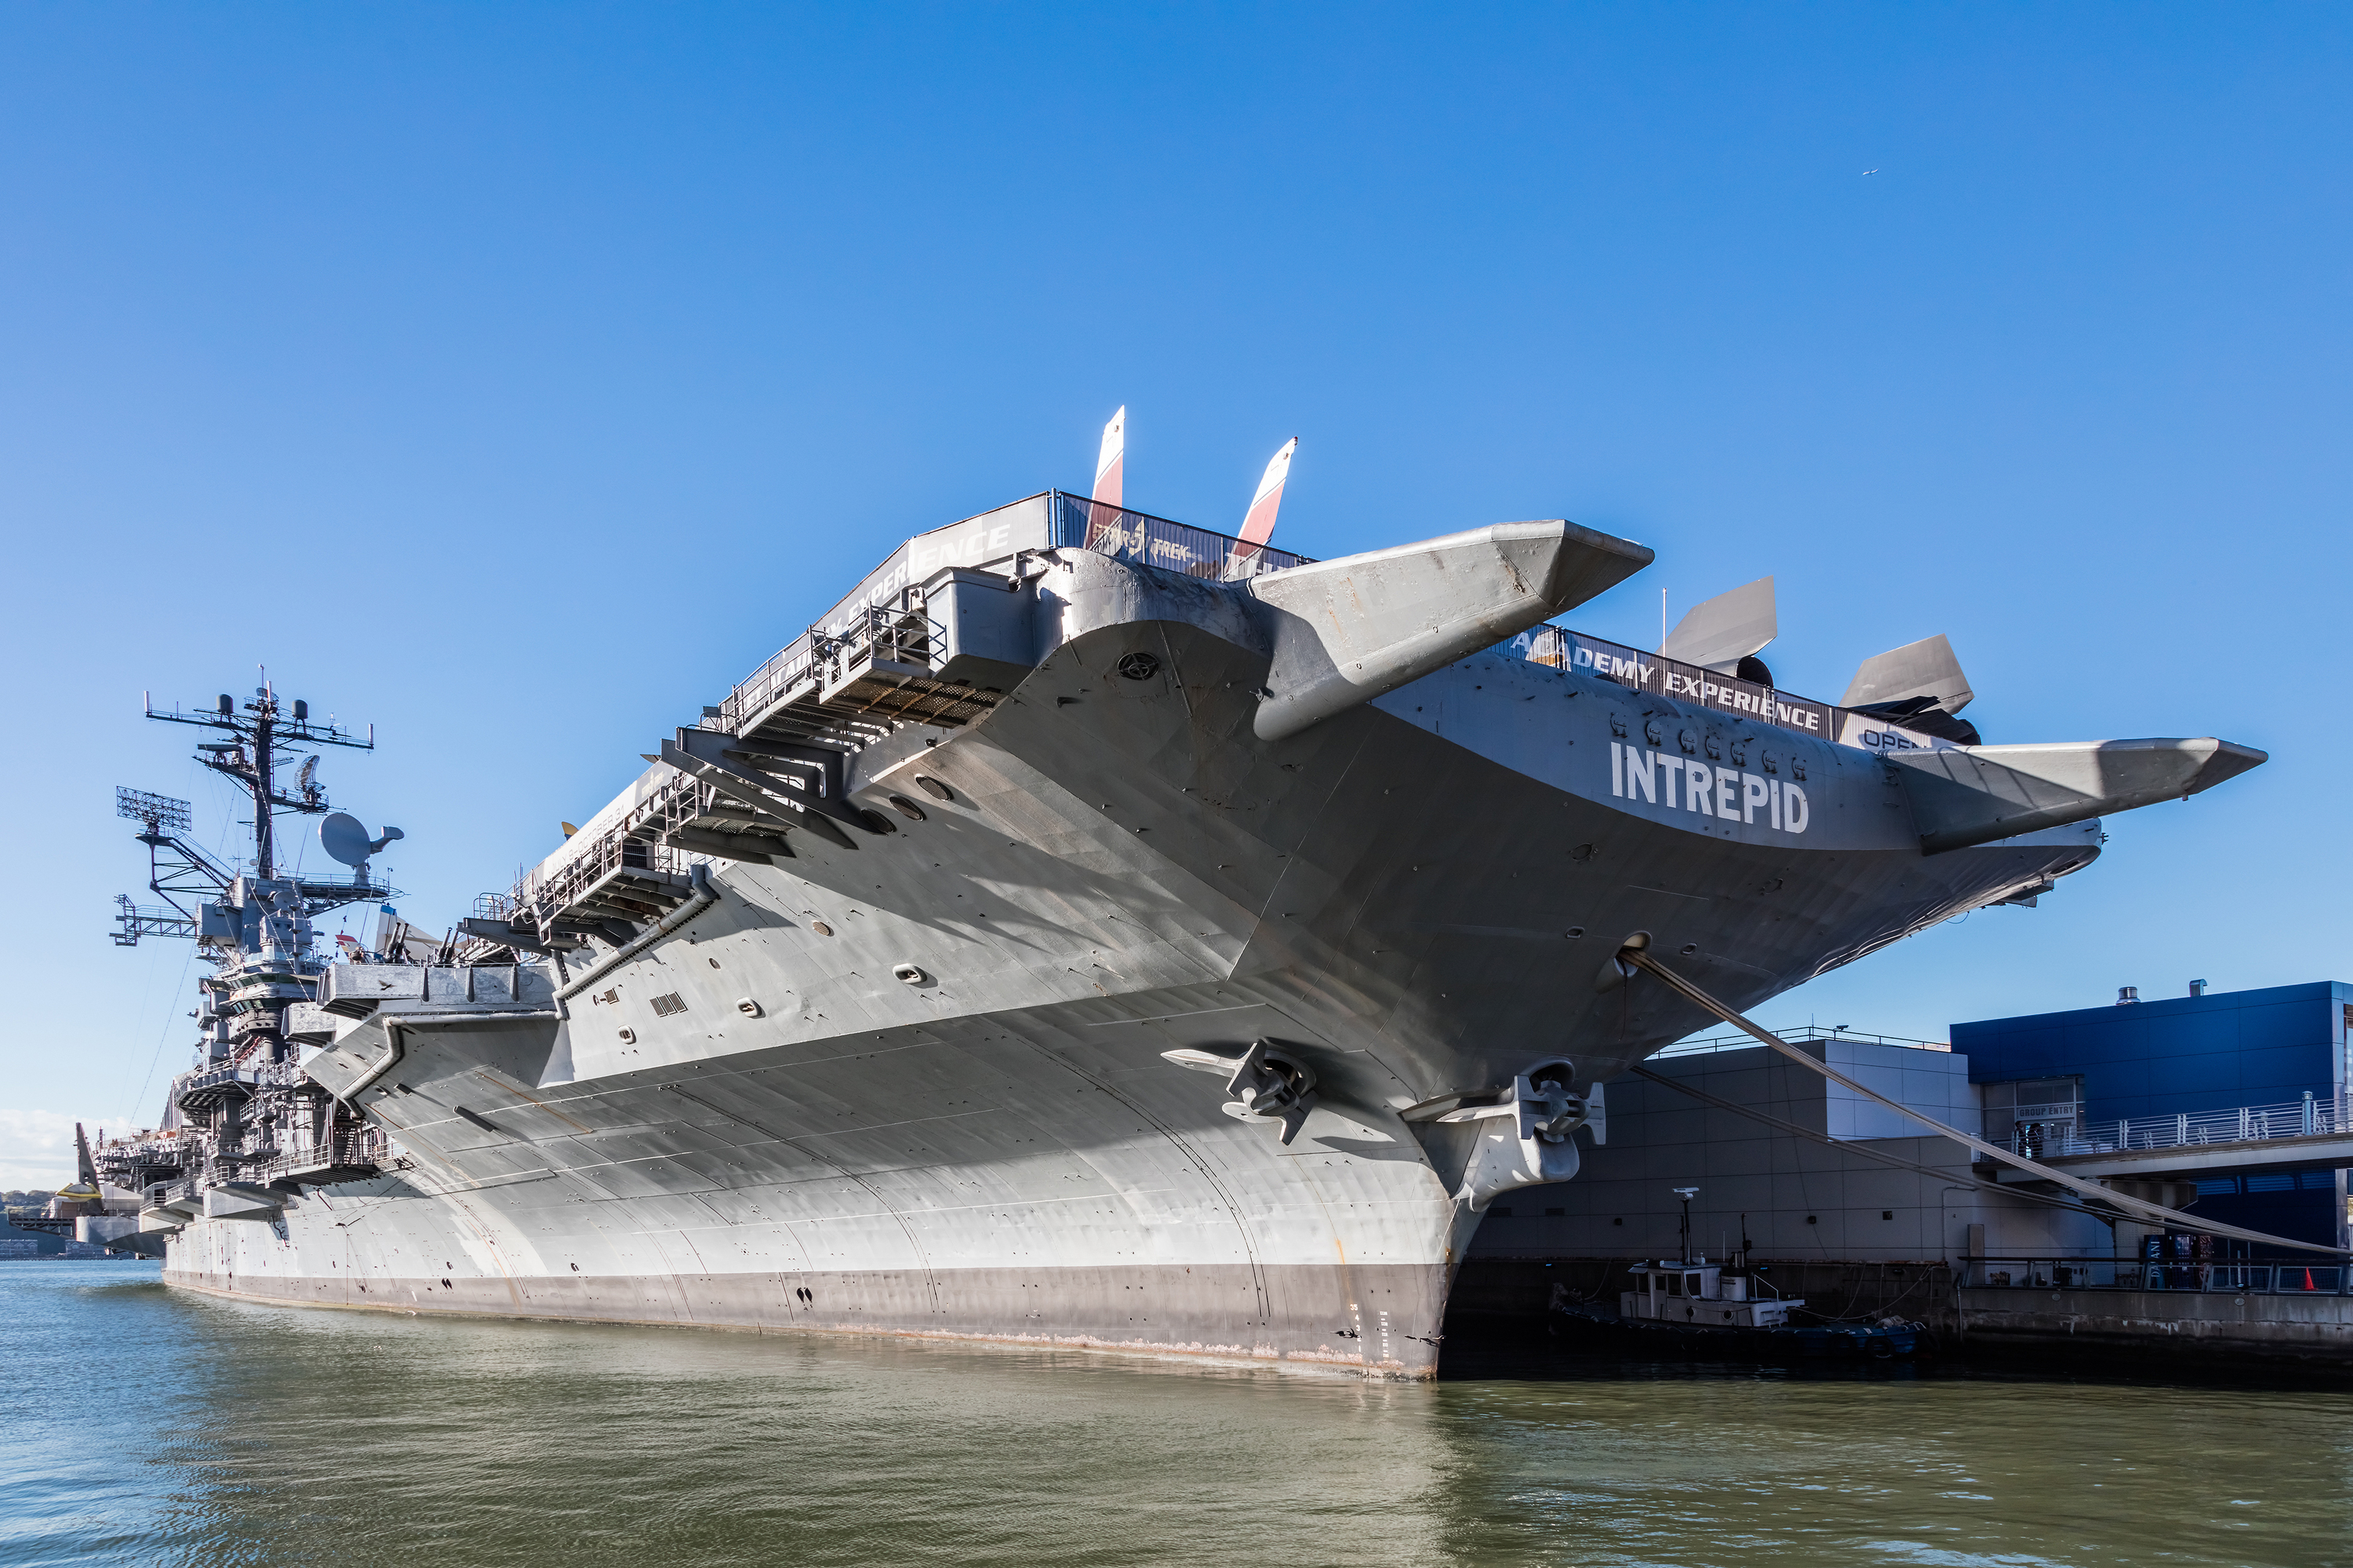 Intrepid Sea, Air & Space Museum's Free Fridays